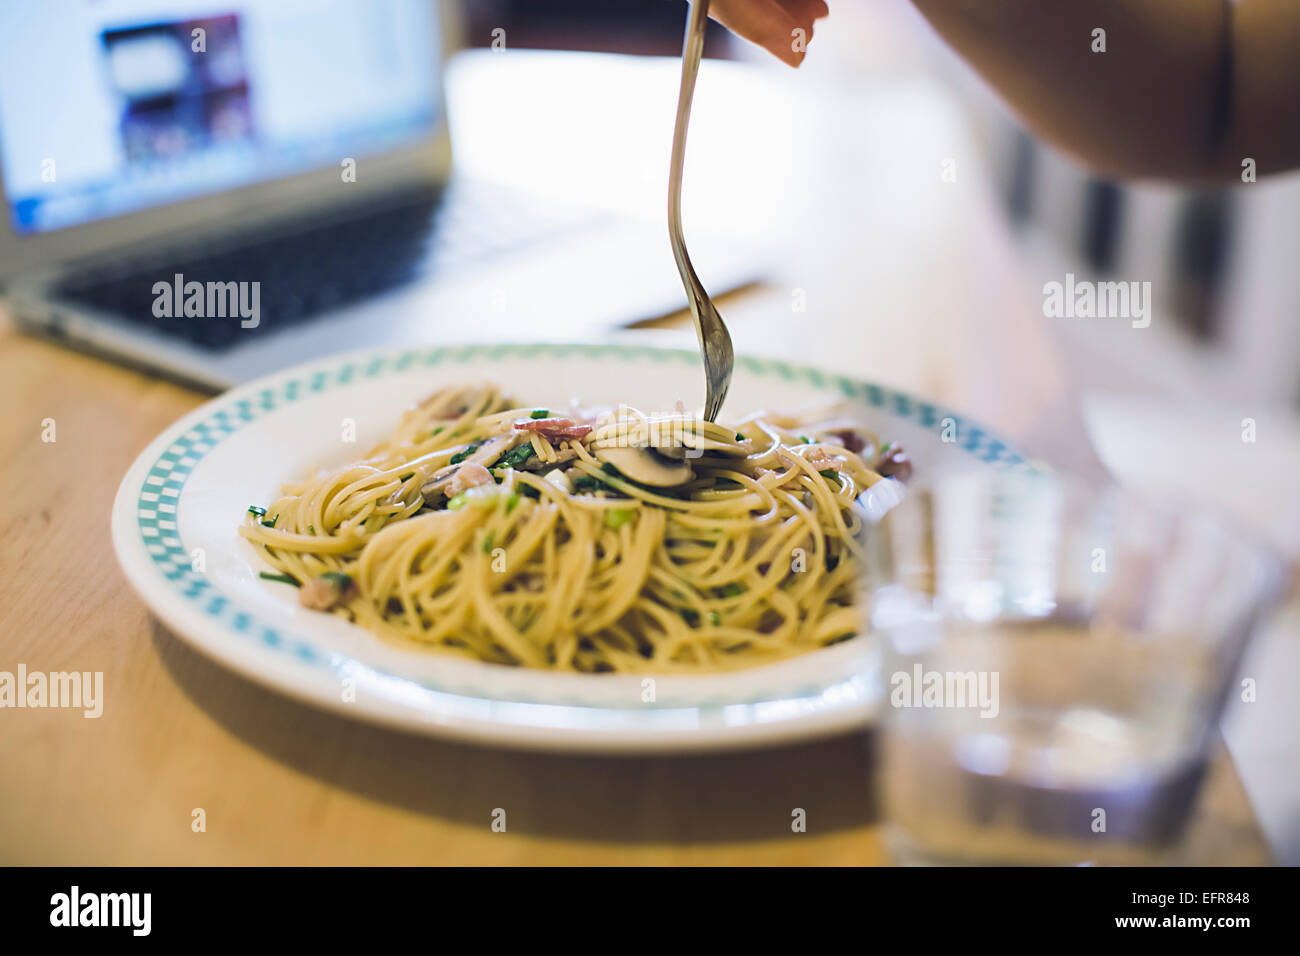 Young woman at table eating plate of noodles, focus on food - Stock Image